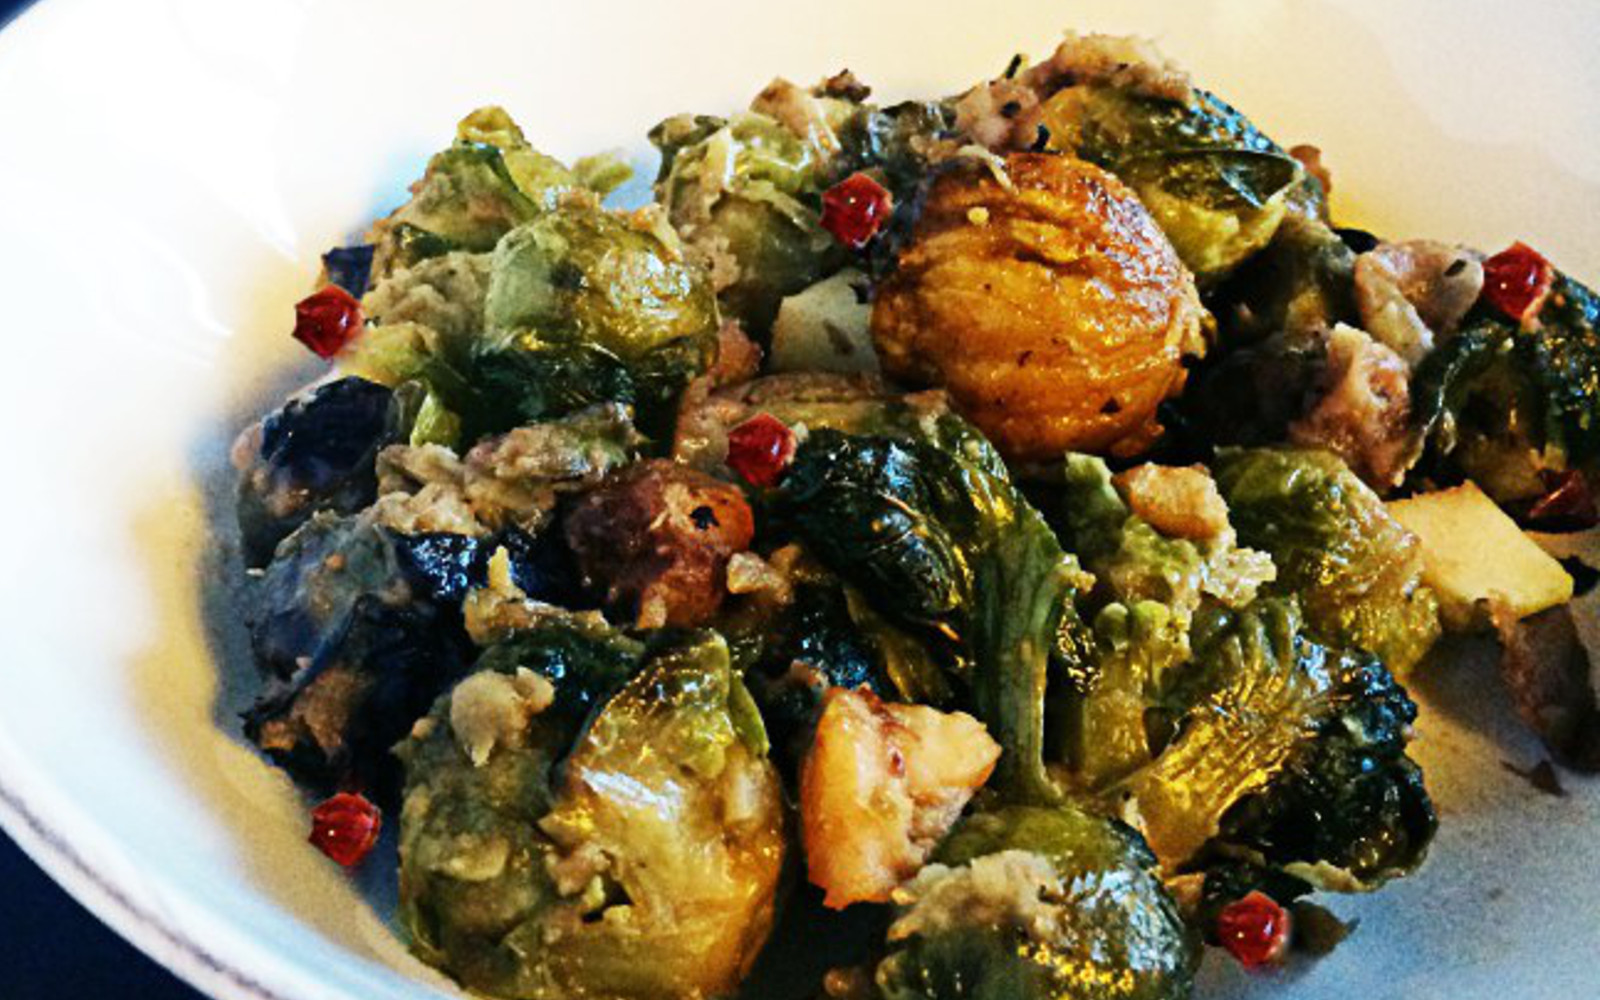 Roasted brussels sprouts with apples and chestnuts b